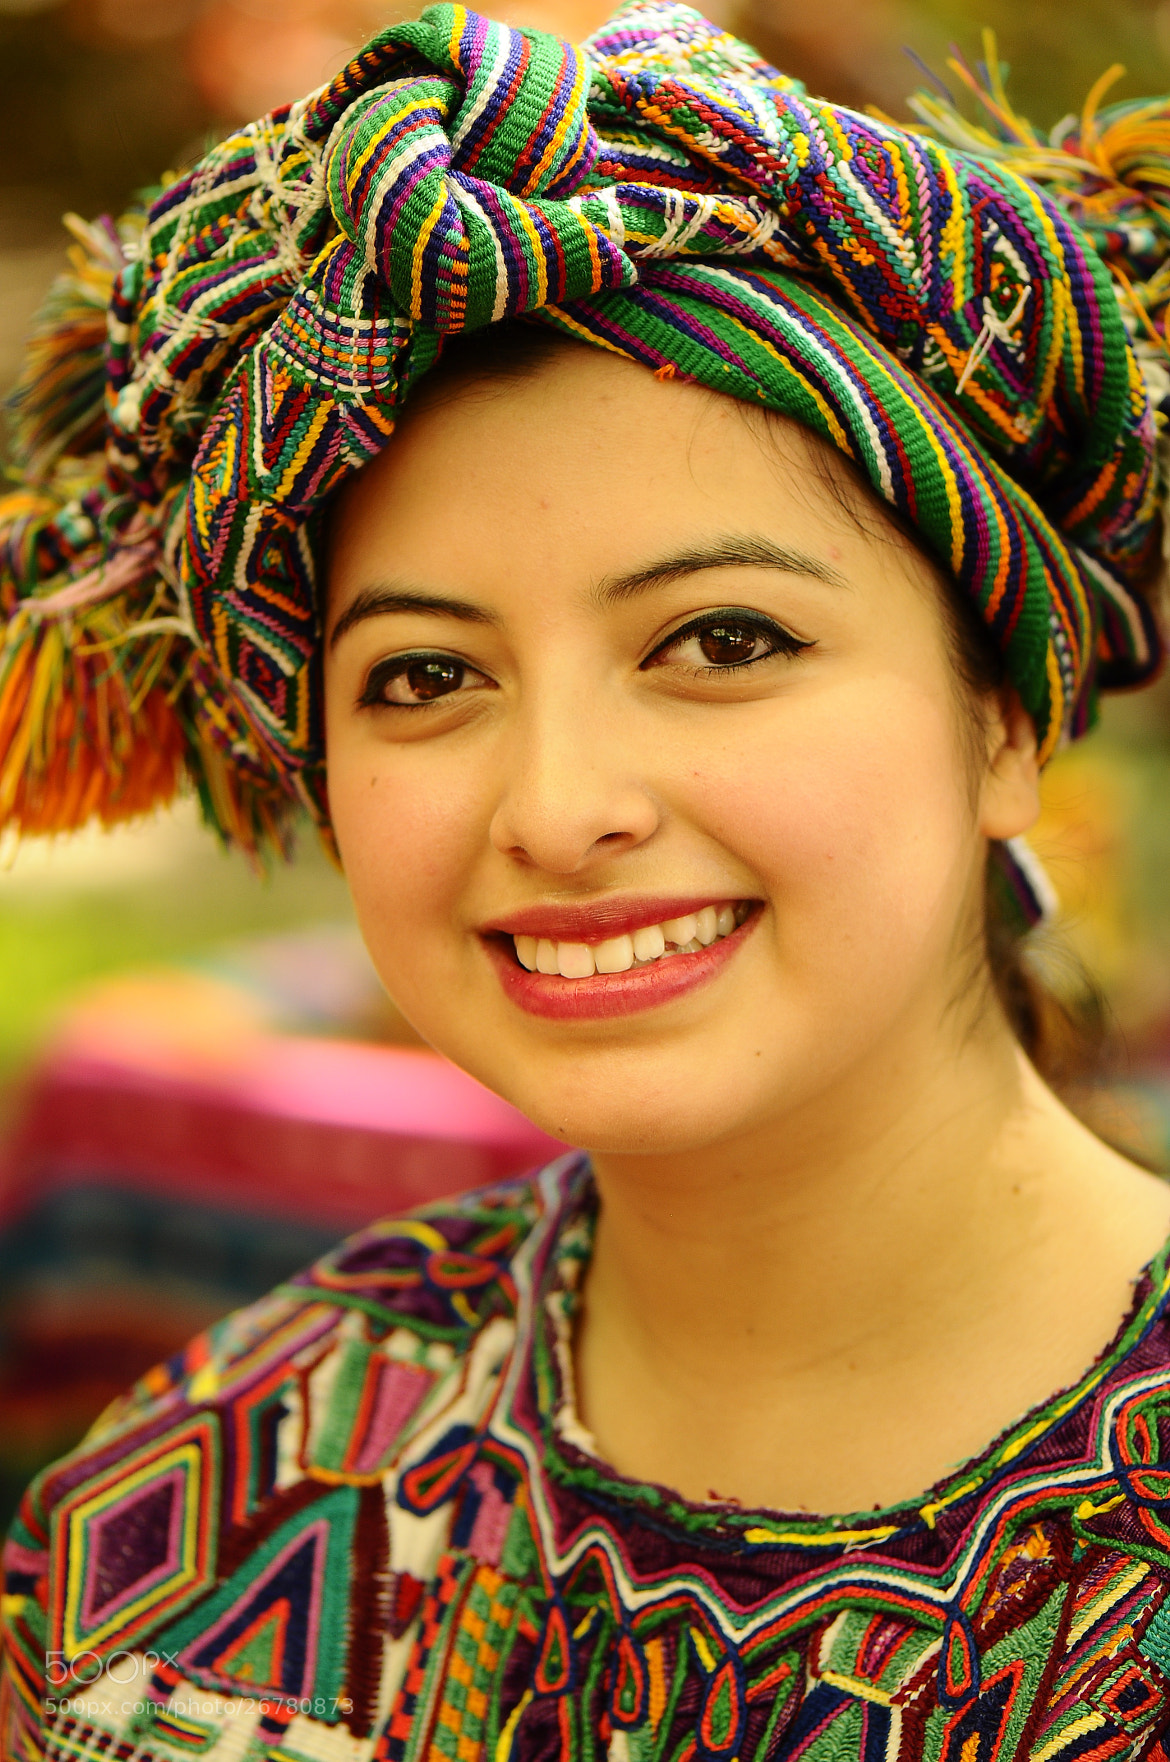 Photograph Guatemalan Beauty by Tots Acebuche on 500px